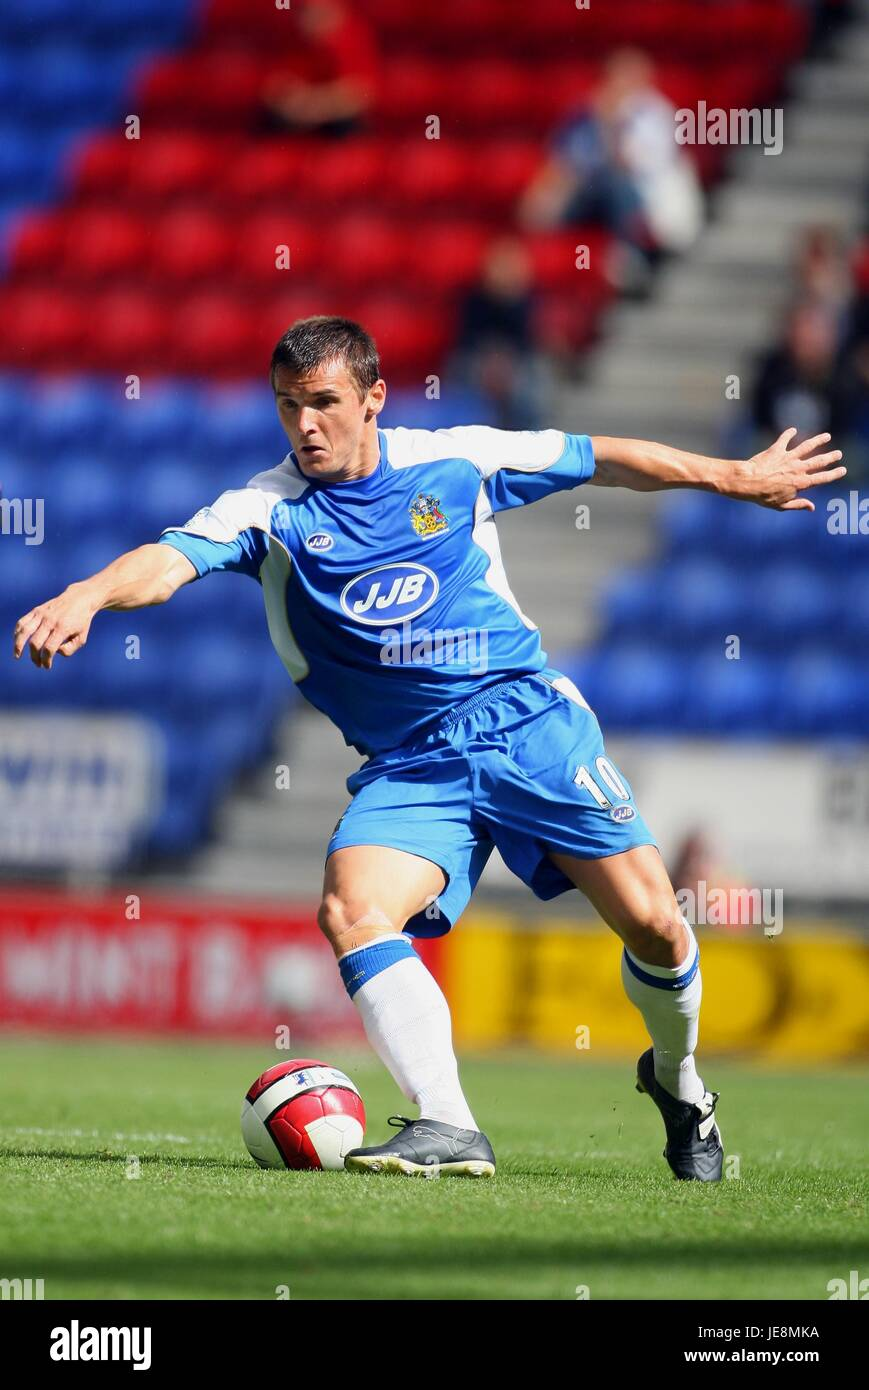 SHOOT OUT 2006-2007-WIGAN ATHLETIC-LEE McCULLOCH